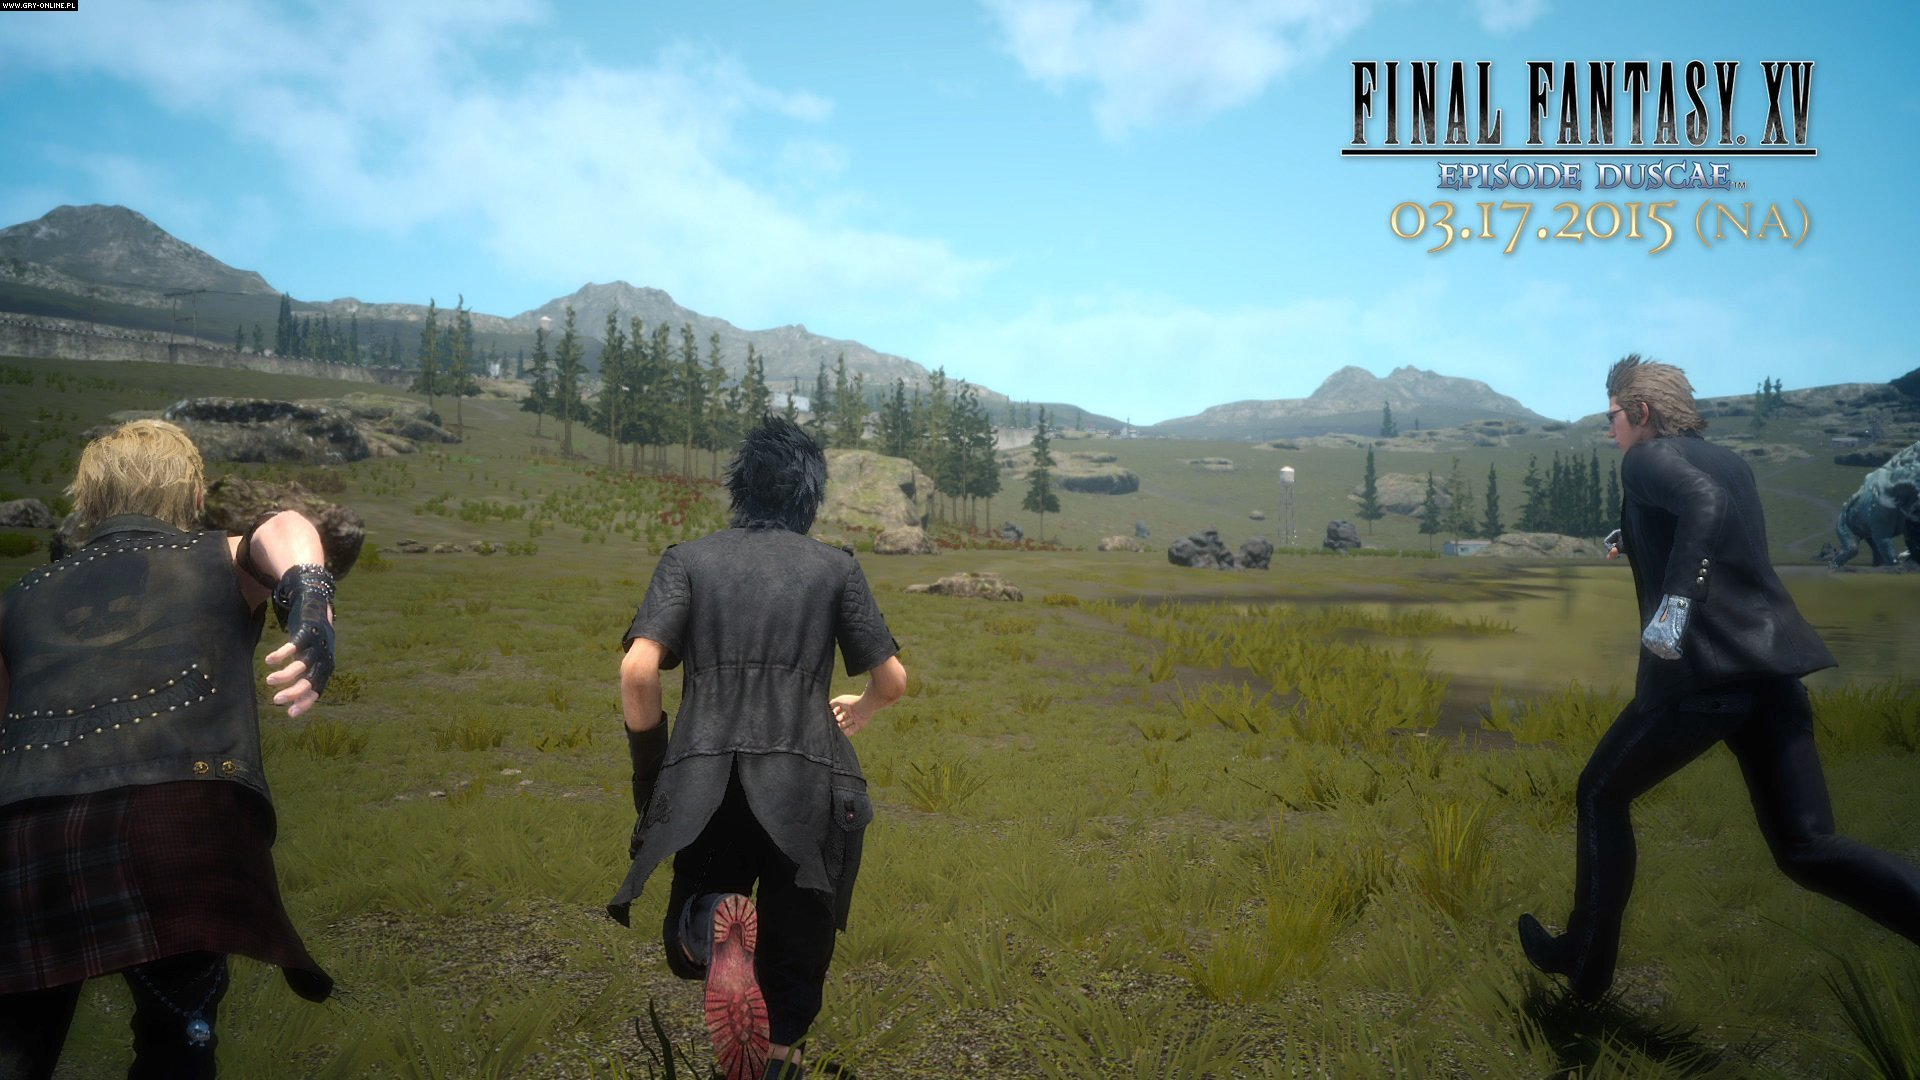 Final Fantasy XV PS4, XONE Gry Screen 173/393, Square-Enix / Eidos